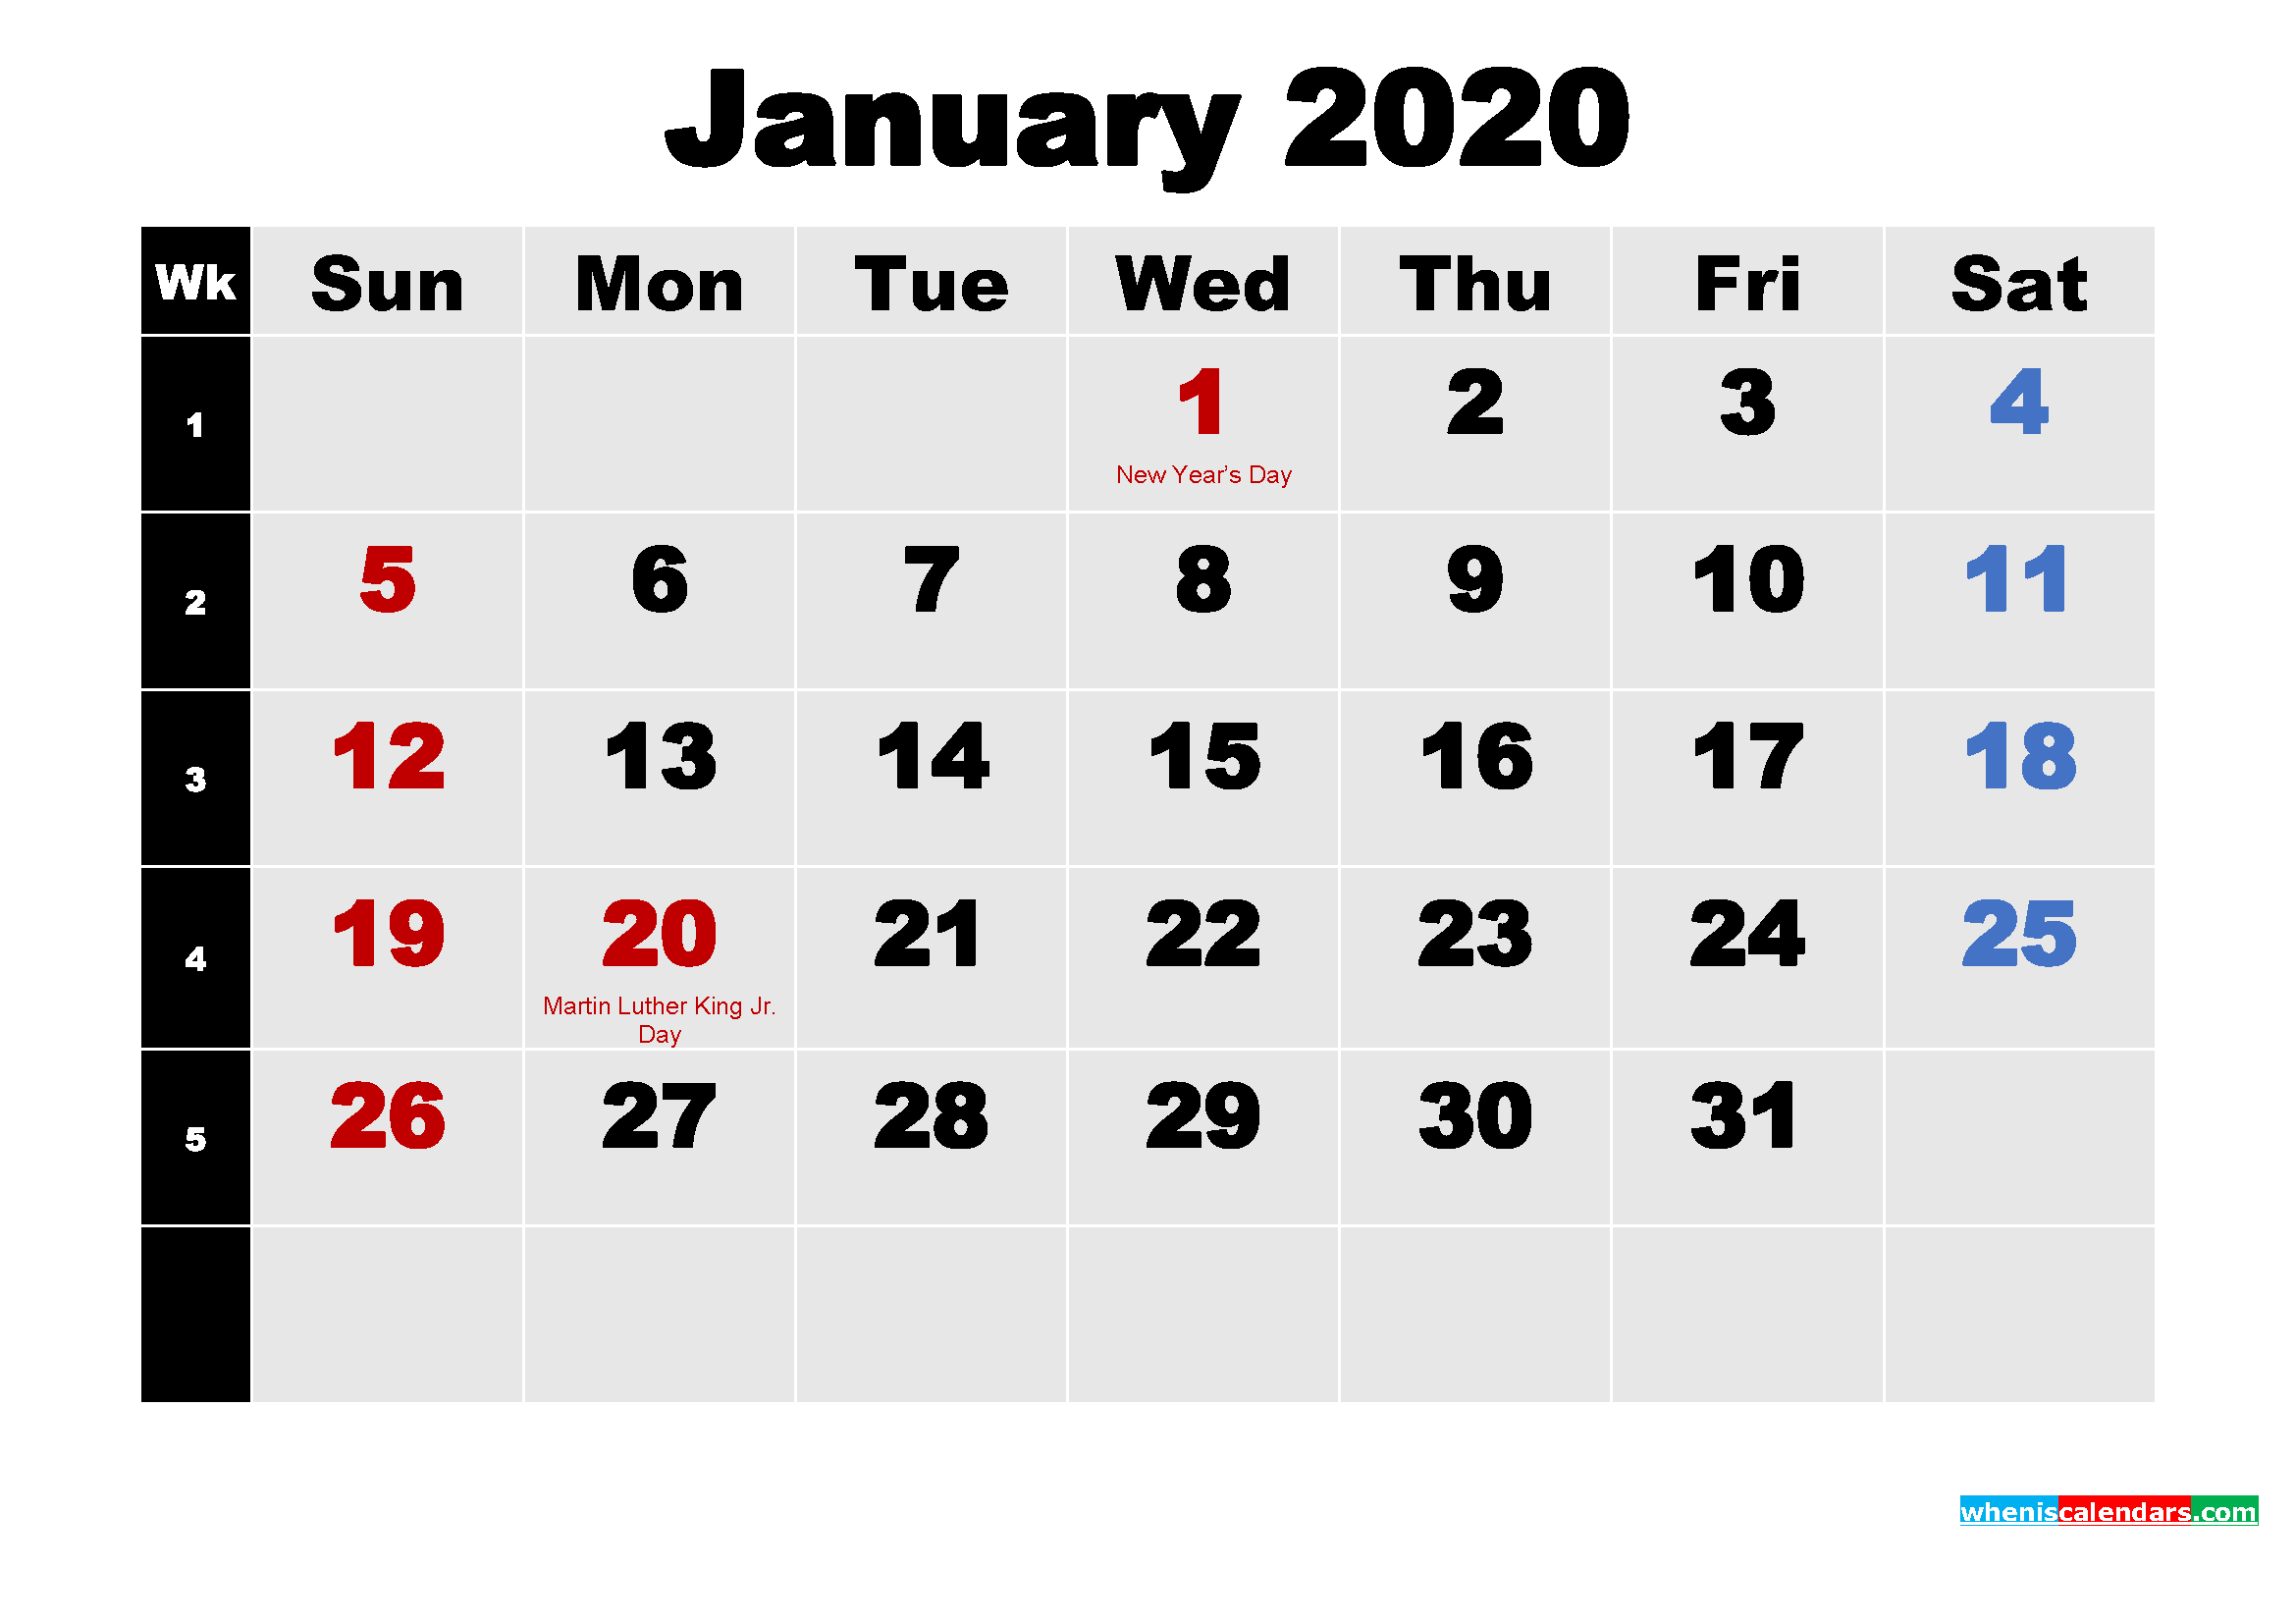 January 2020 Calendar With Holidays Wallpaper Free Printable